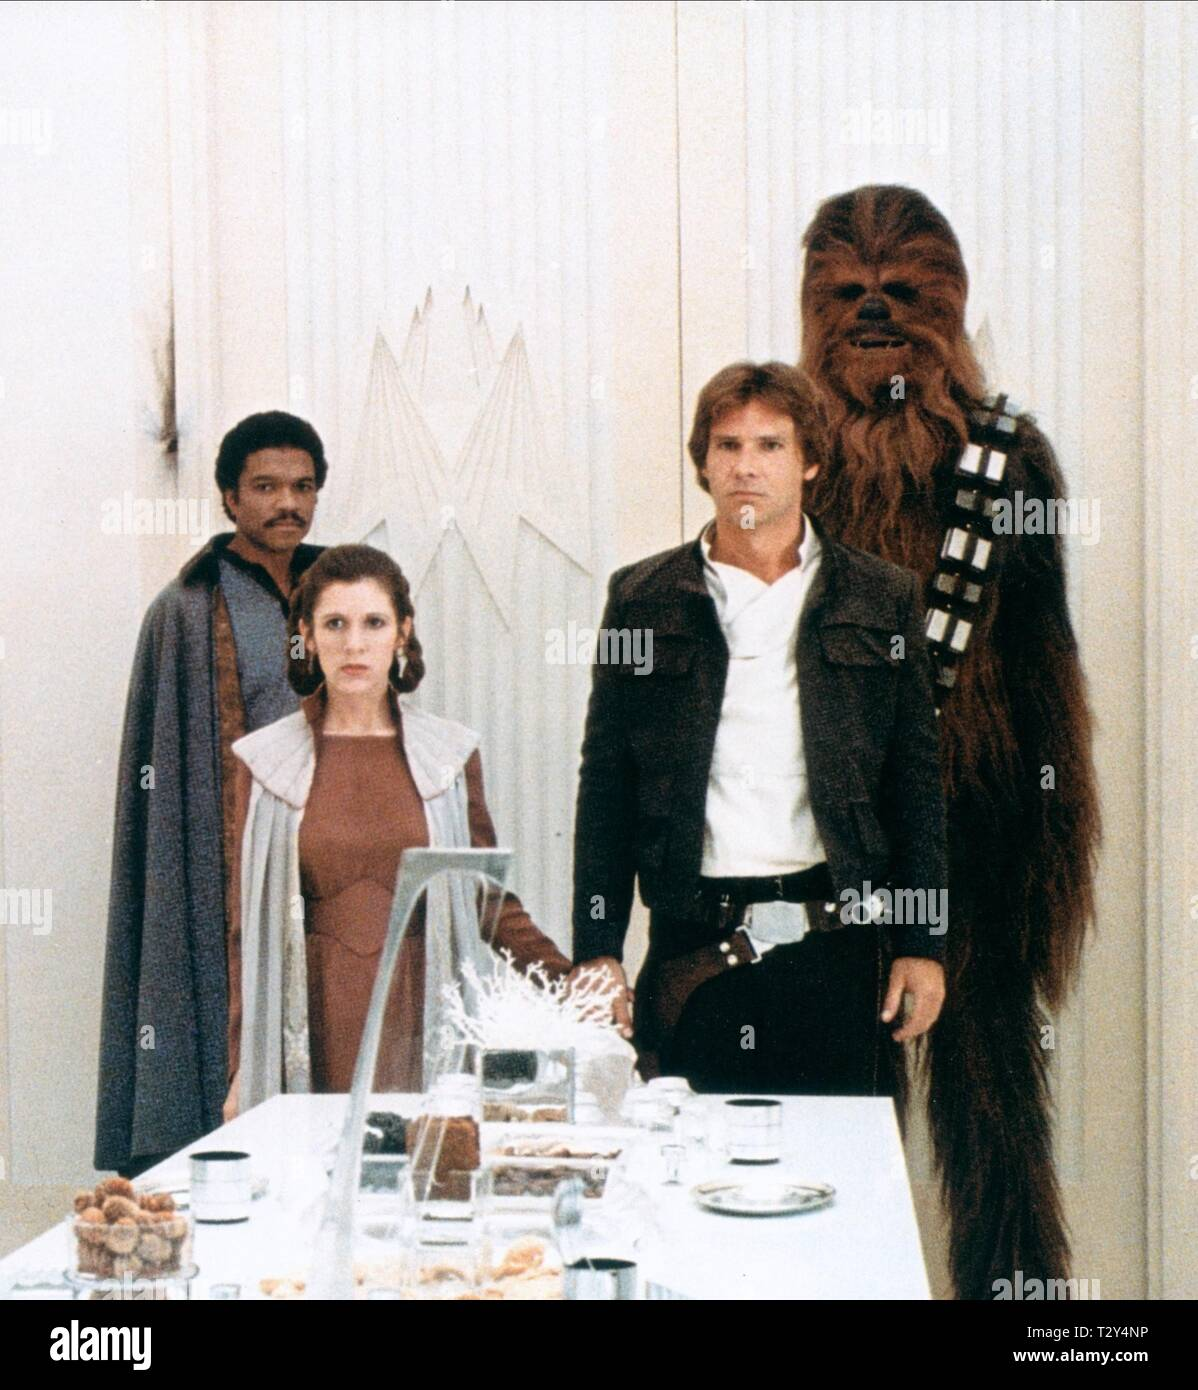 STAR WARS: EPISODE V - THE EMPIRE STRIKES BACK, BILLY DEE WILLIAMS, CARRIE FISHER, HARRISON FORD , PETER MAYHEW, 1980 - Stock Image